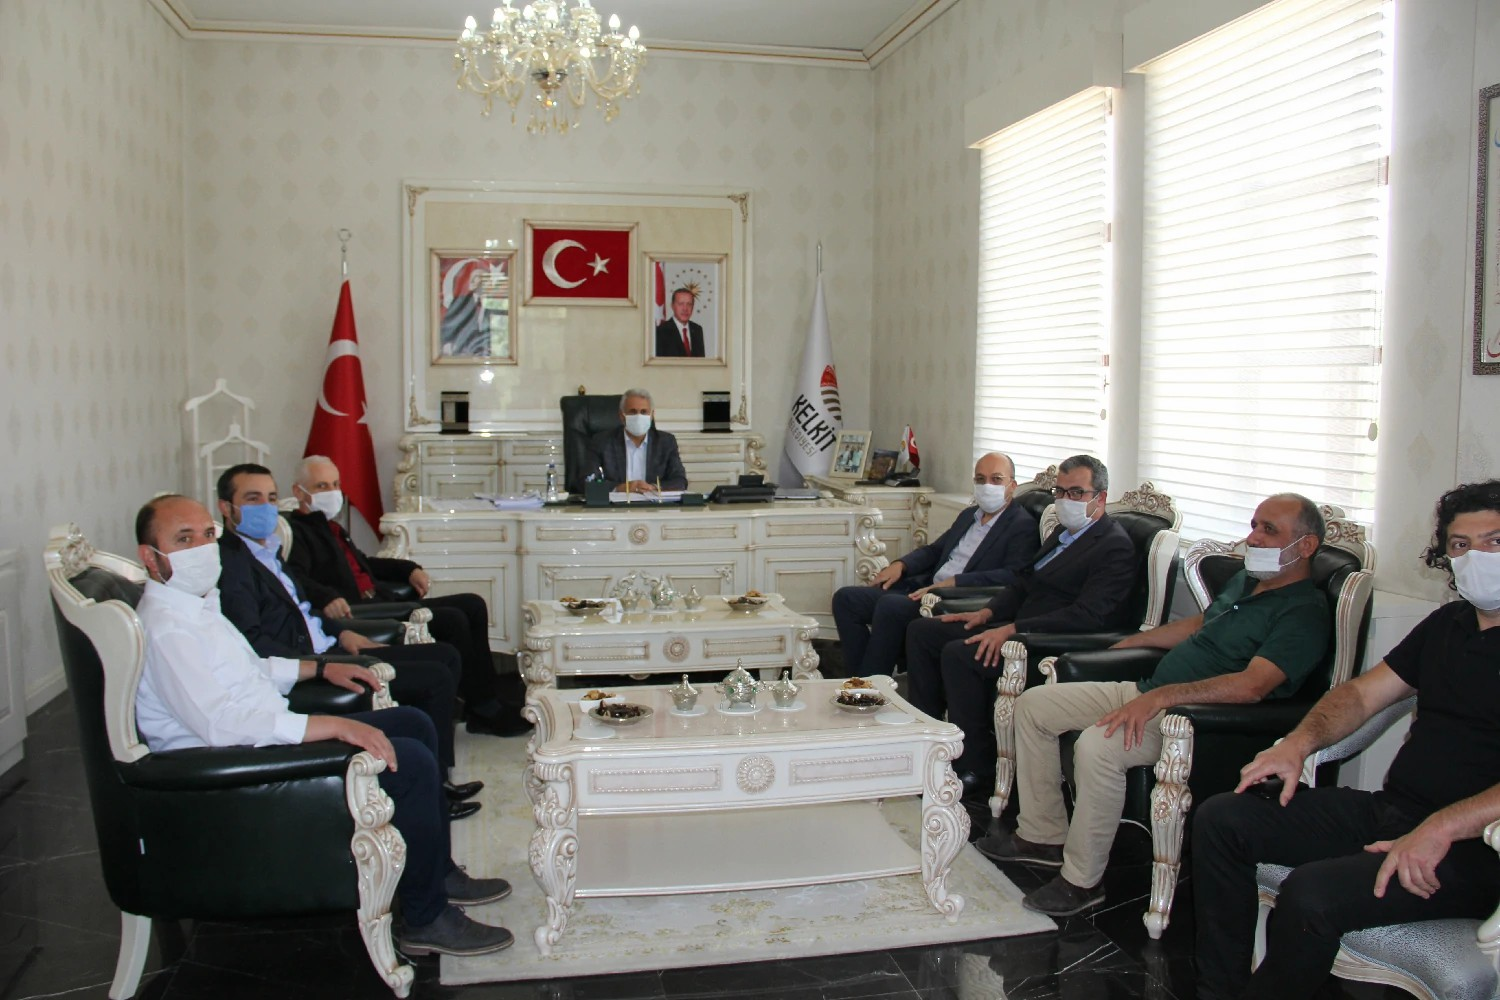 Our Rector Paid Formal Visits in Kelkit